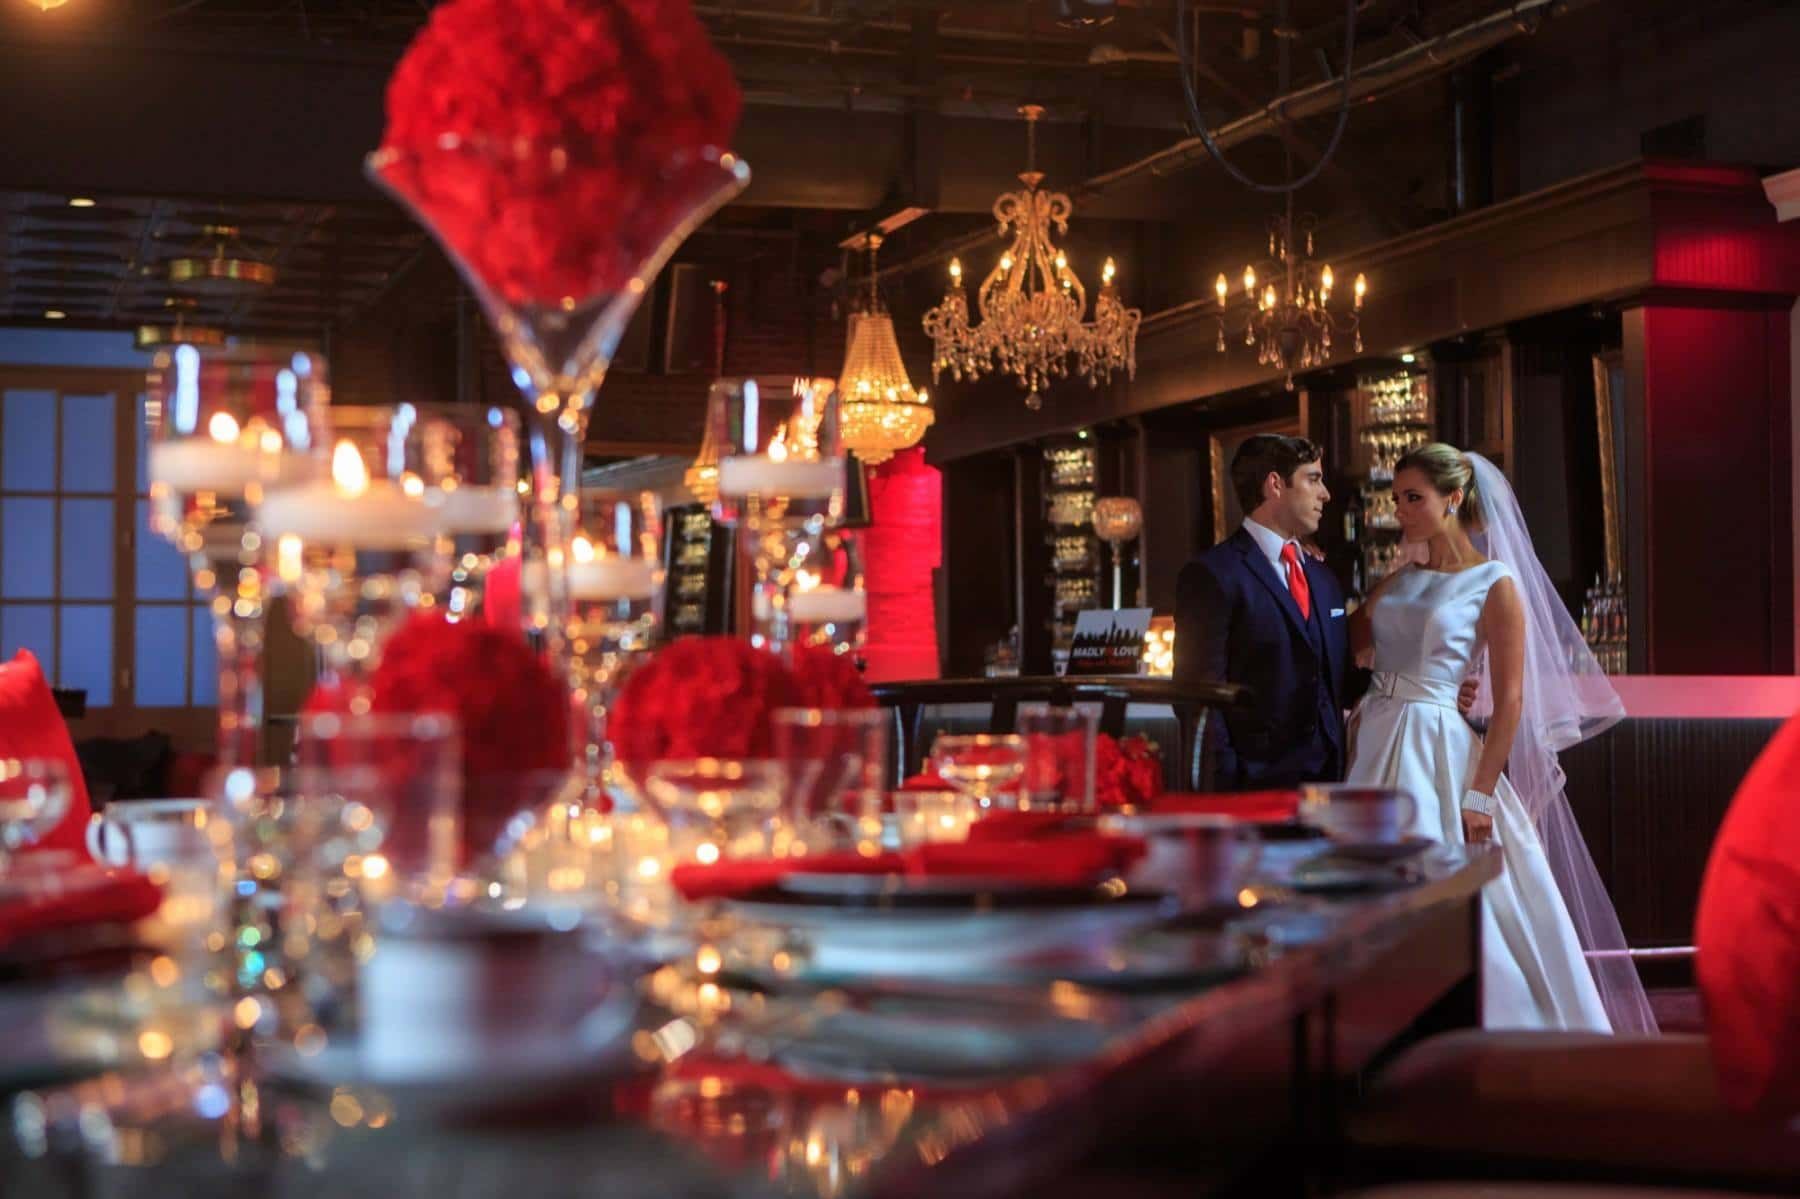 Wedding Reception at Generations Hall. Photo: GK Photography